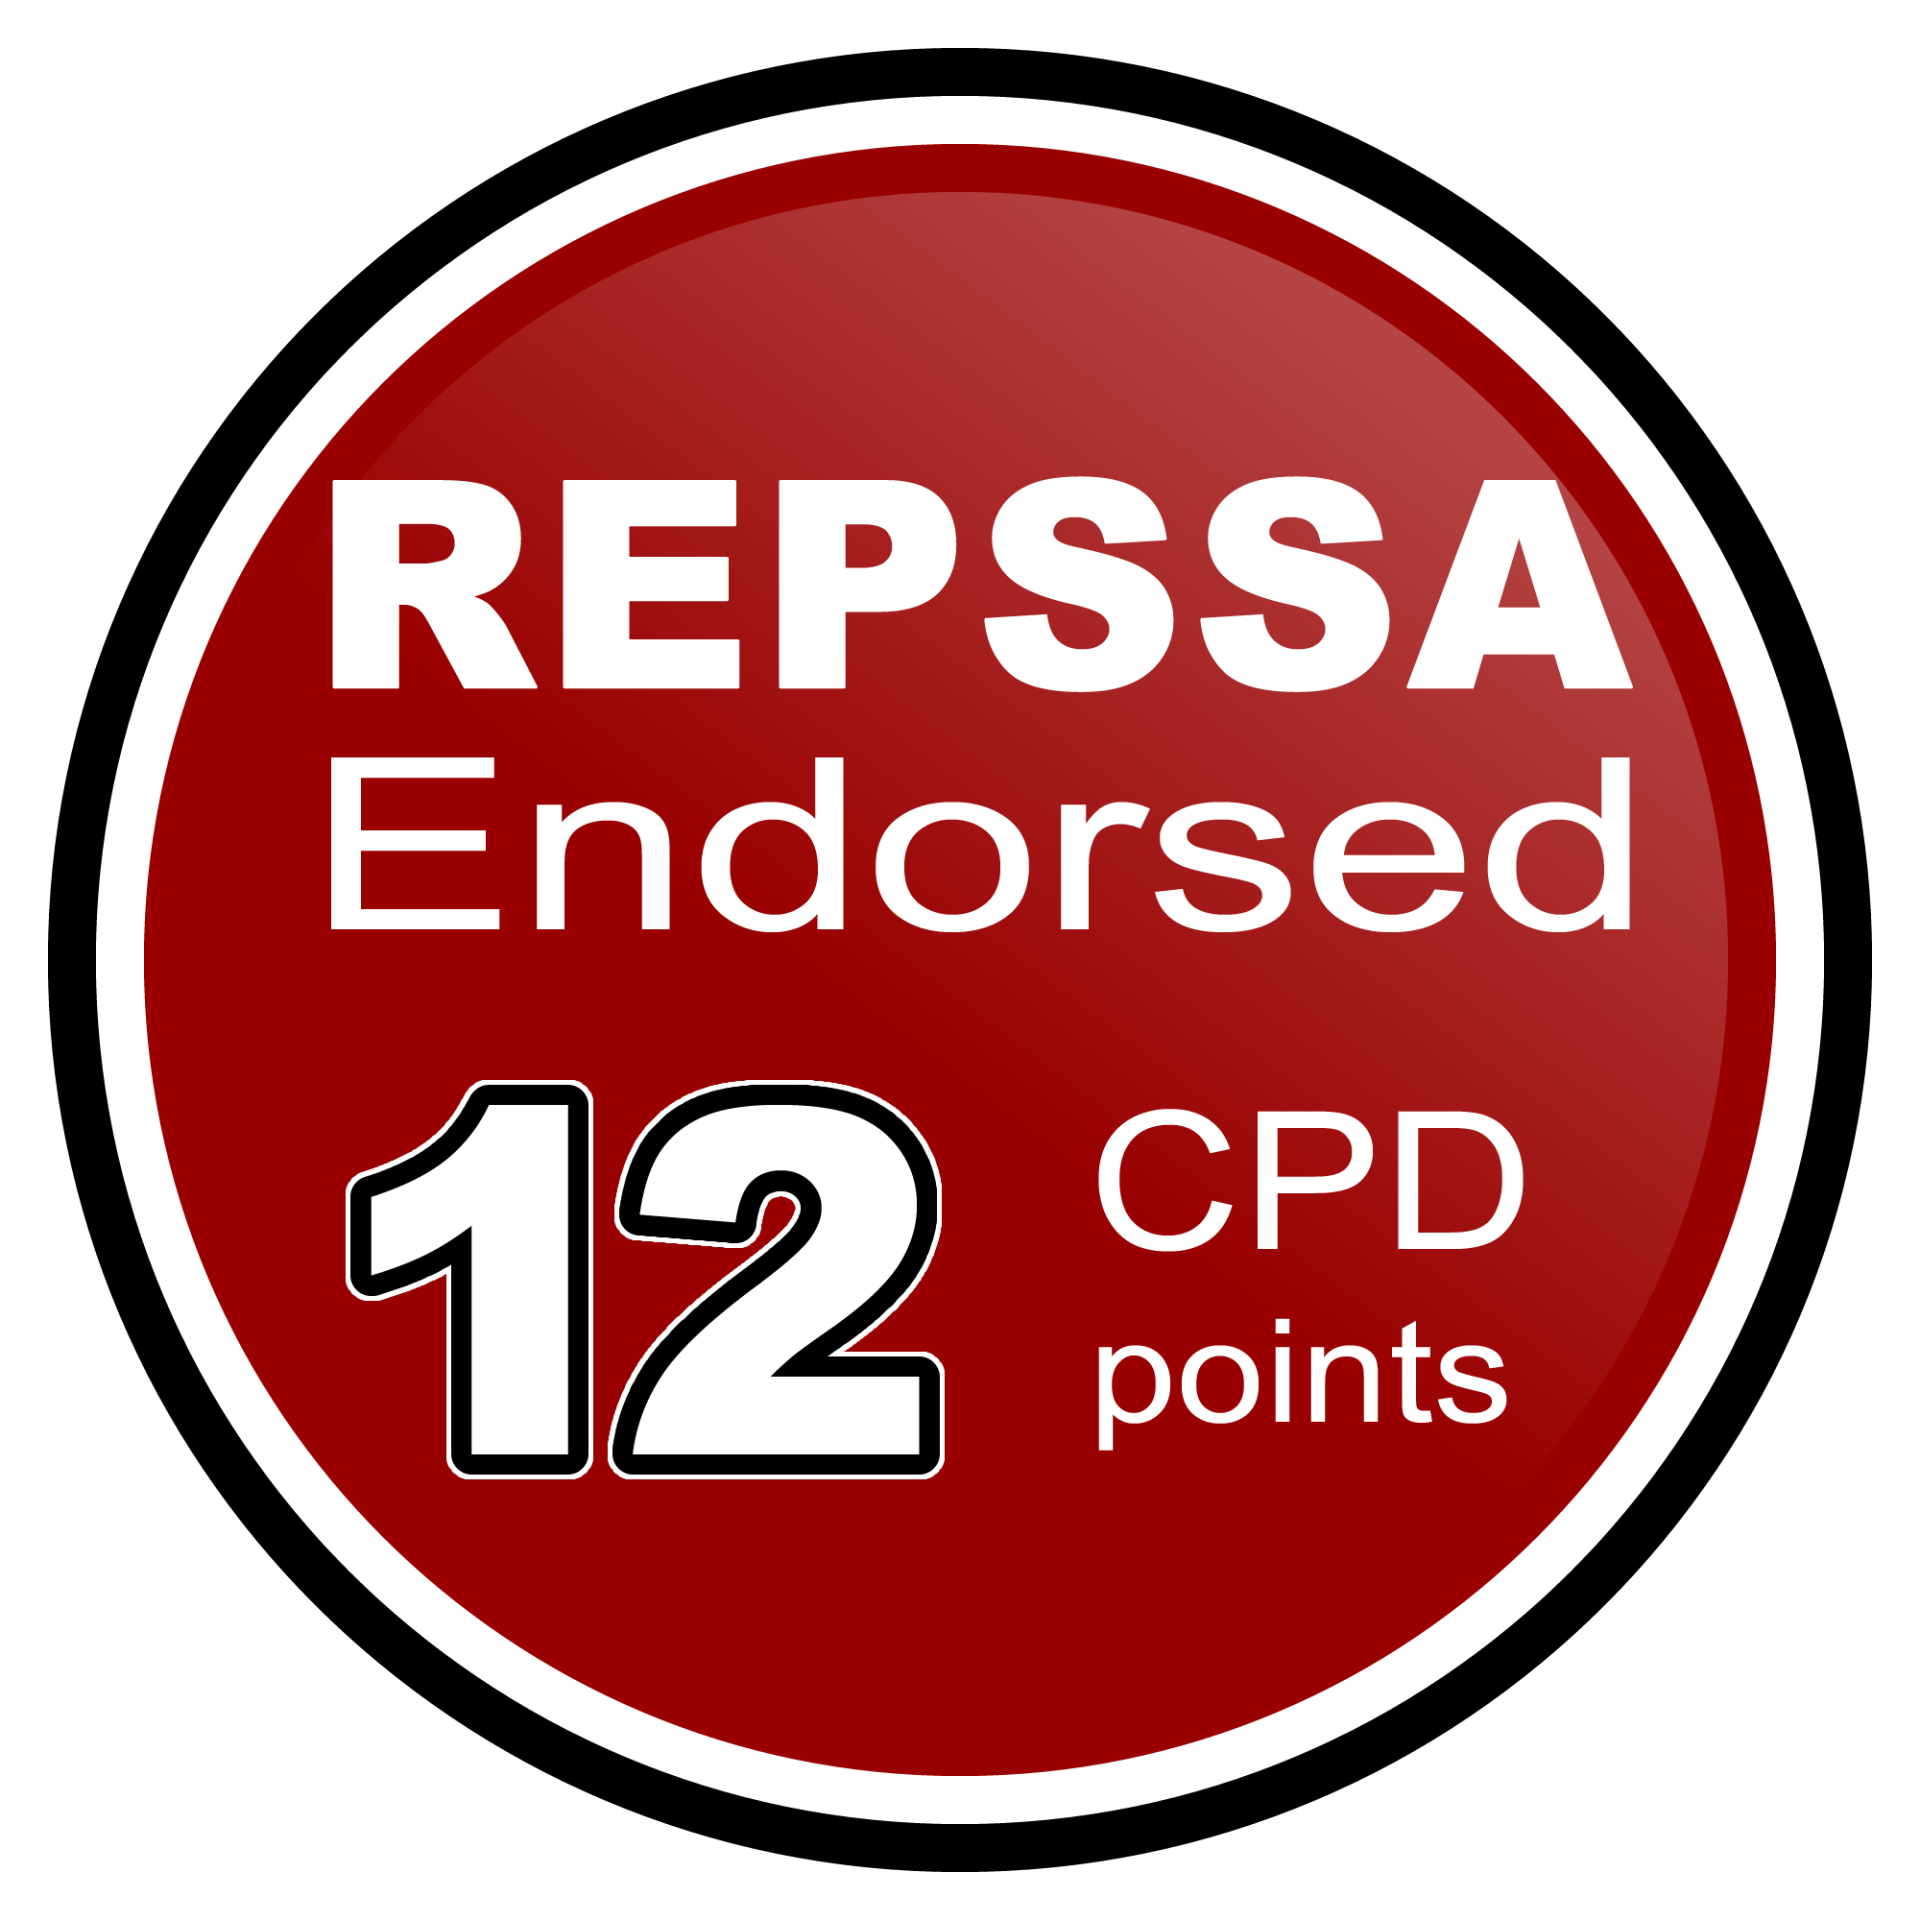 REPSSA 12 CPD points